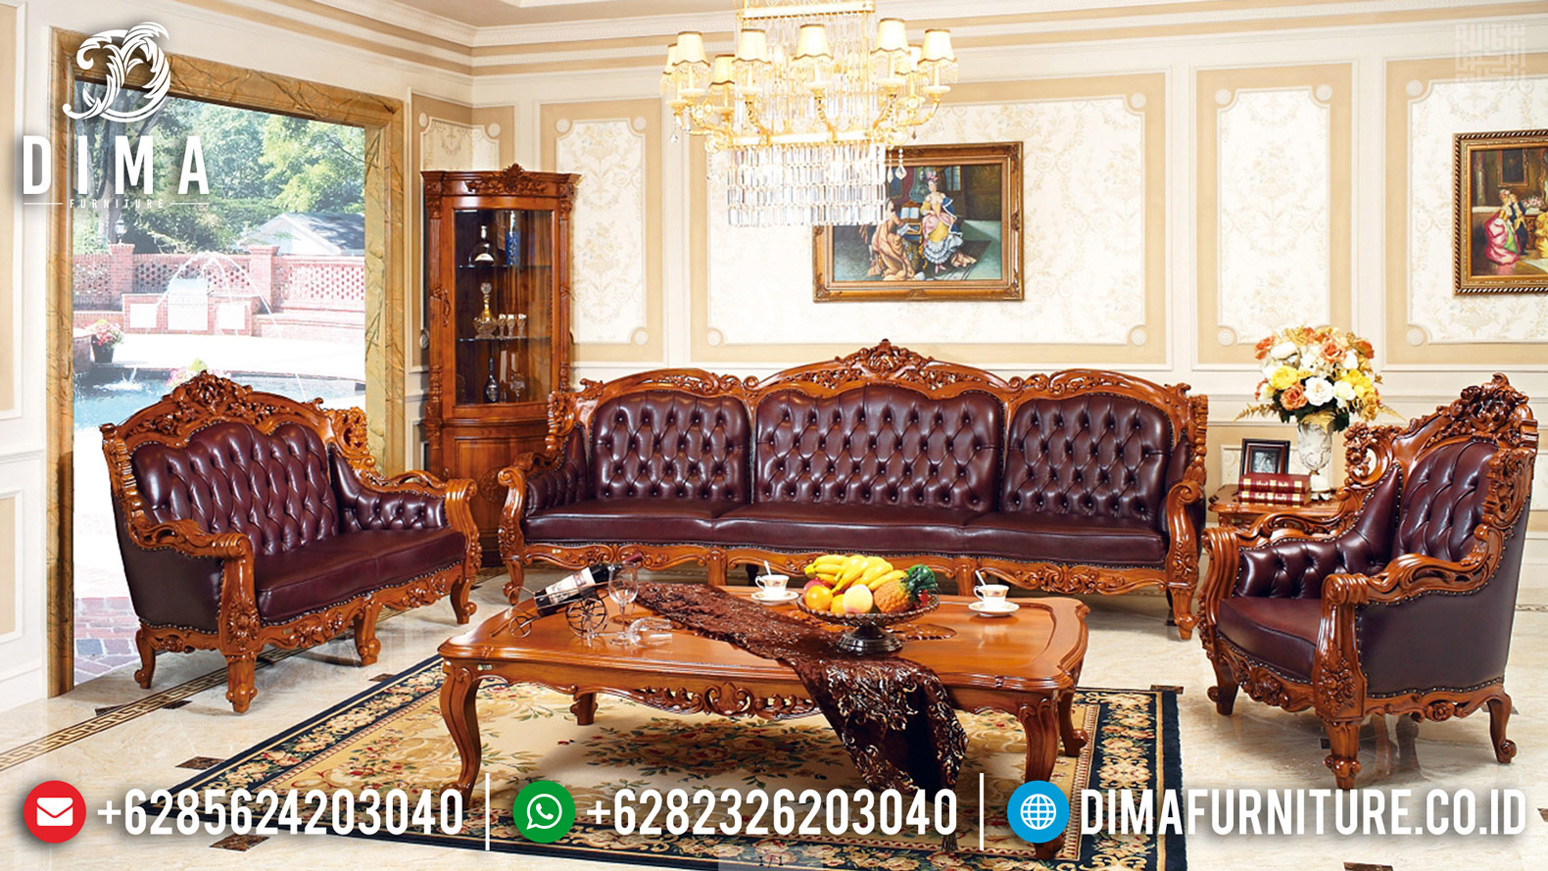 Sofa Tamu Mewah Klasik Jati Natural Rose Wood Color Furniture Jepara Terbaru BT-0644